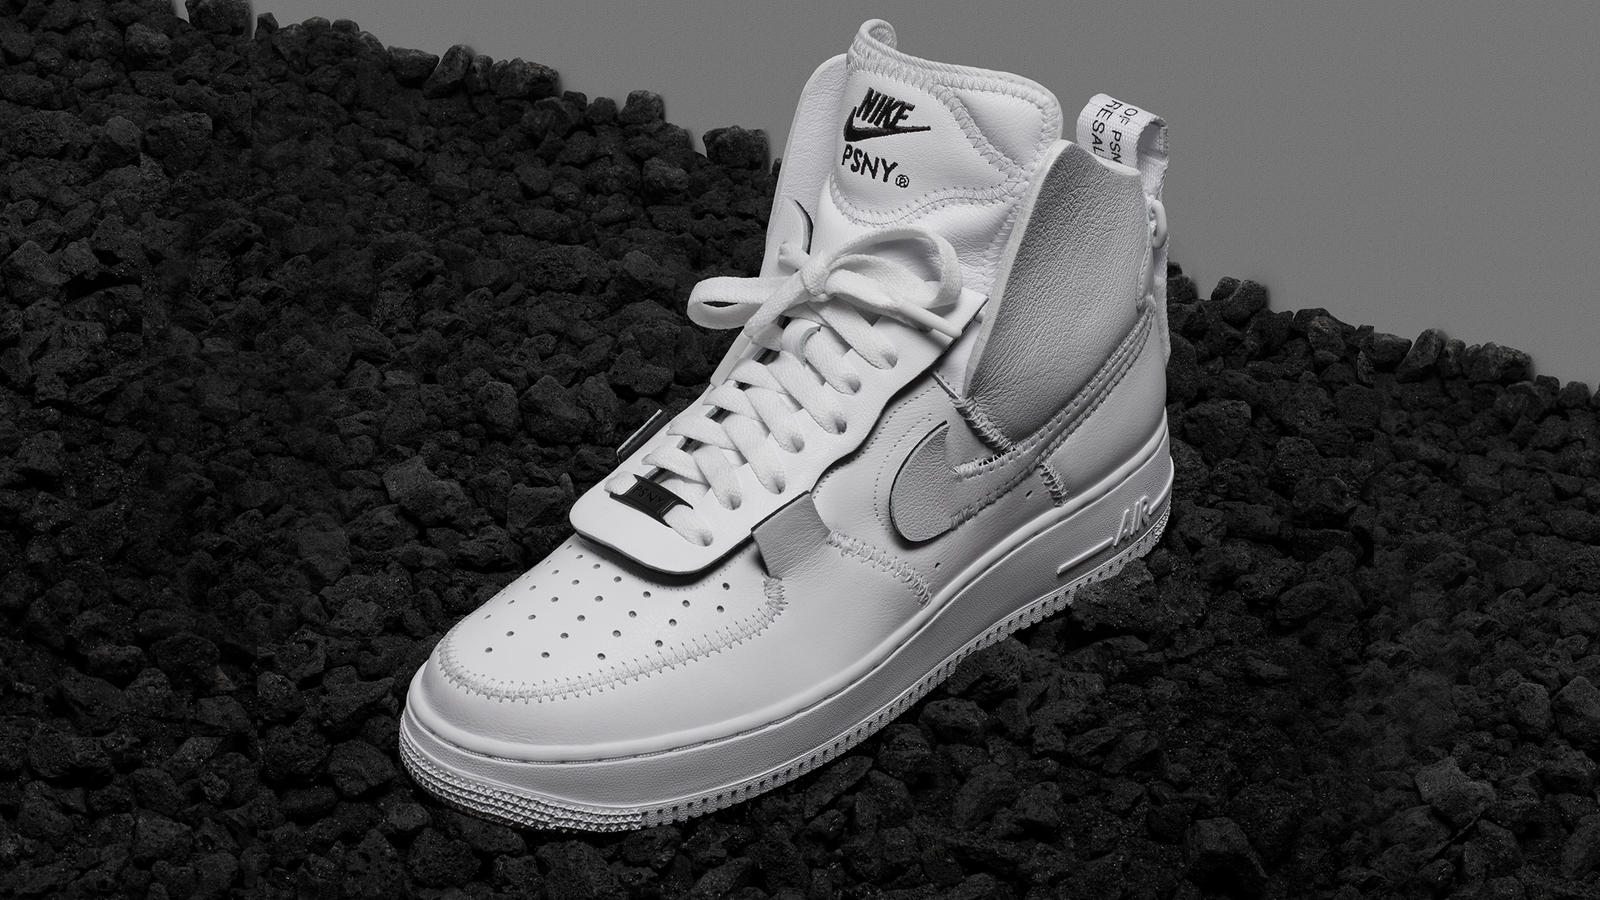 nike-air-force-1-high-psny-white-release-20180904